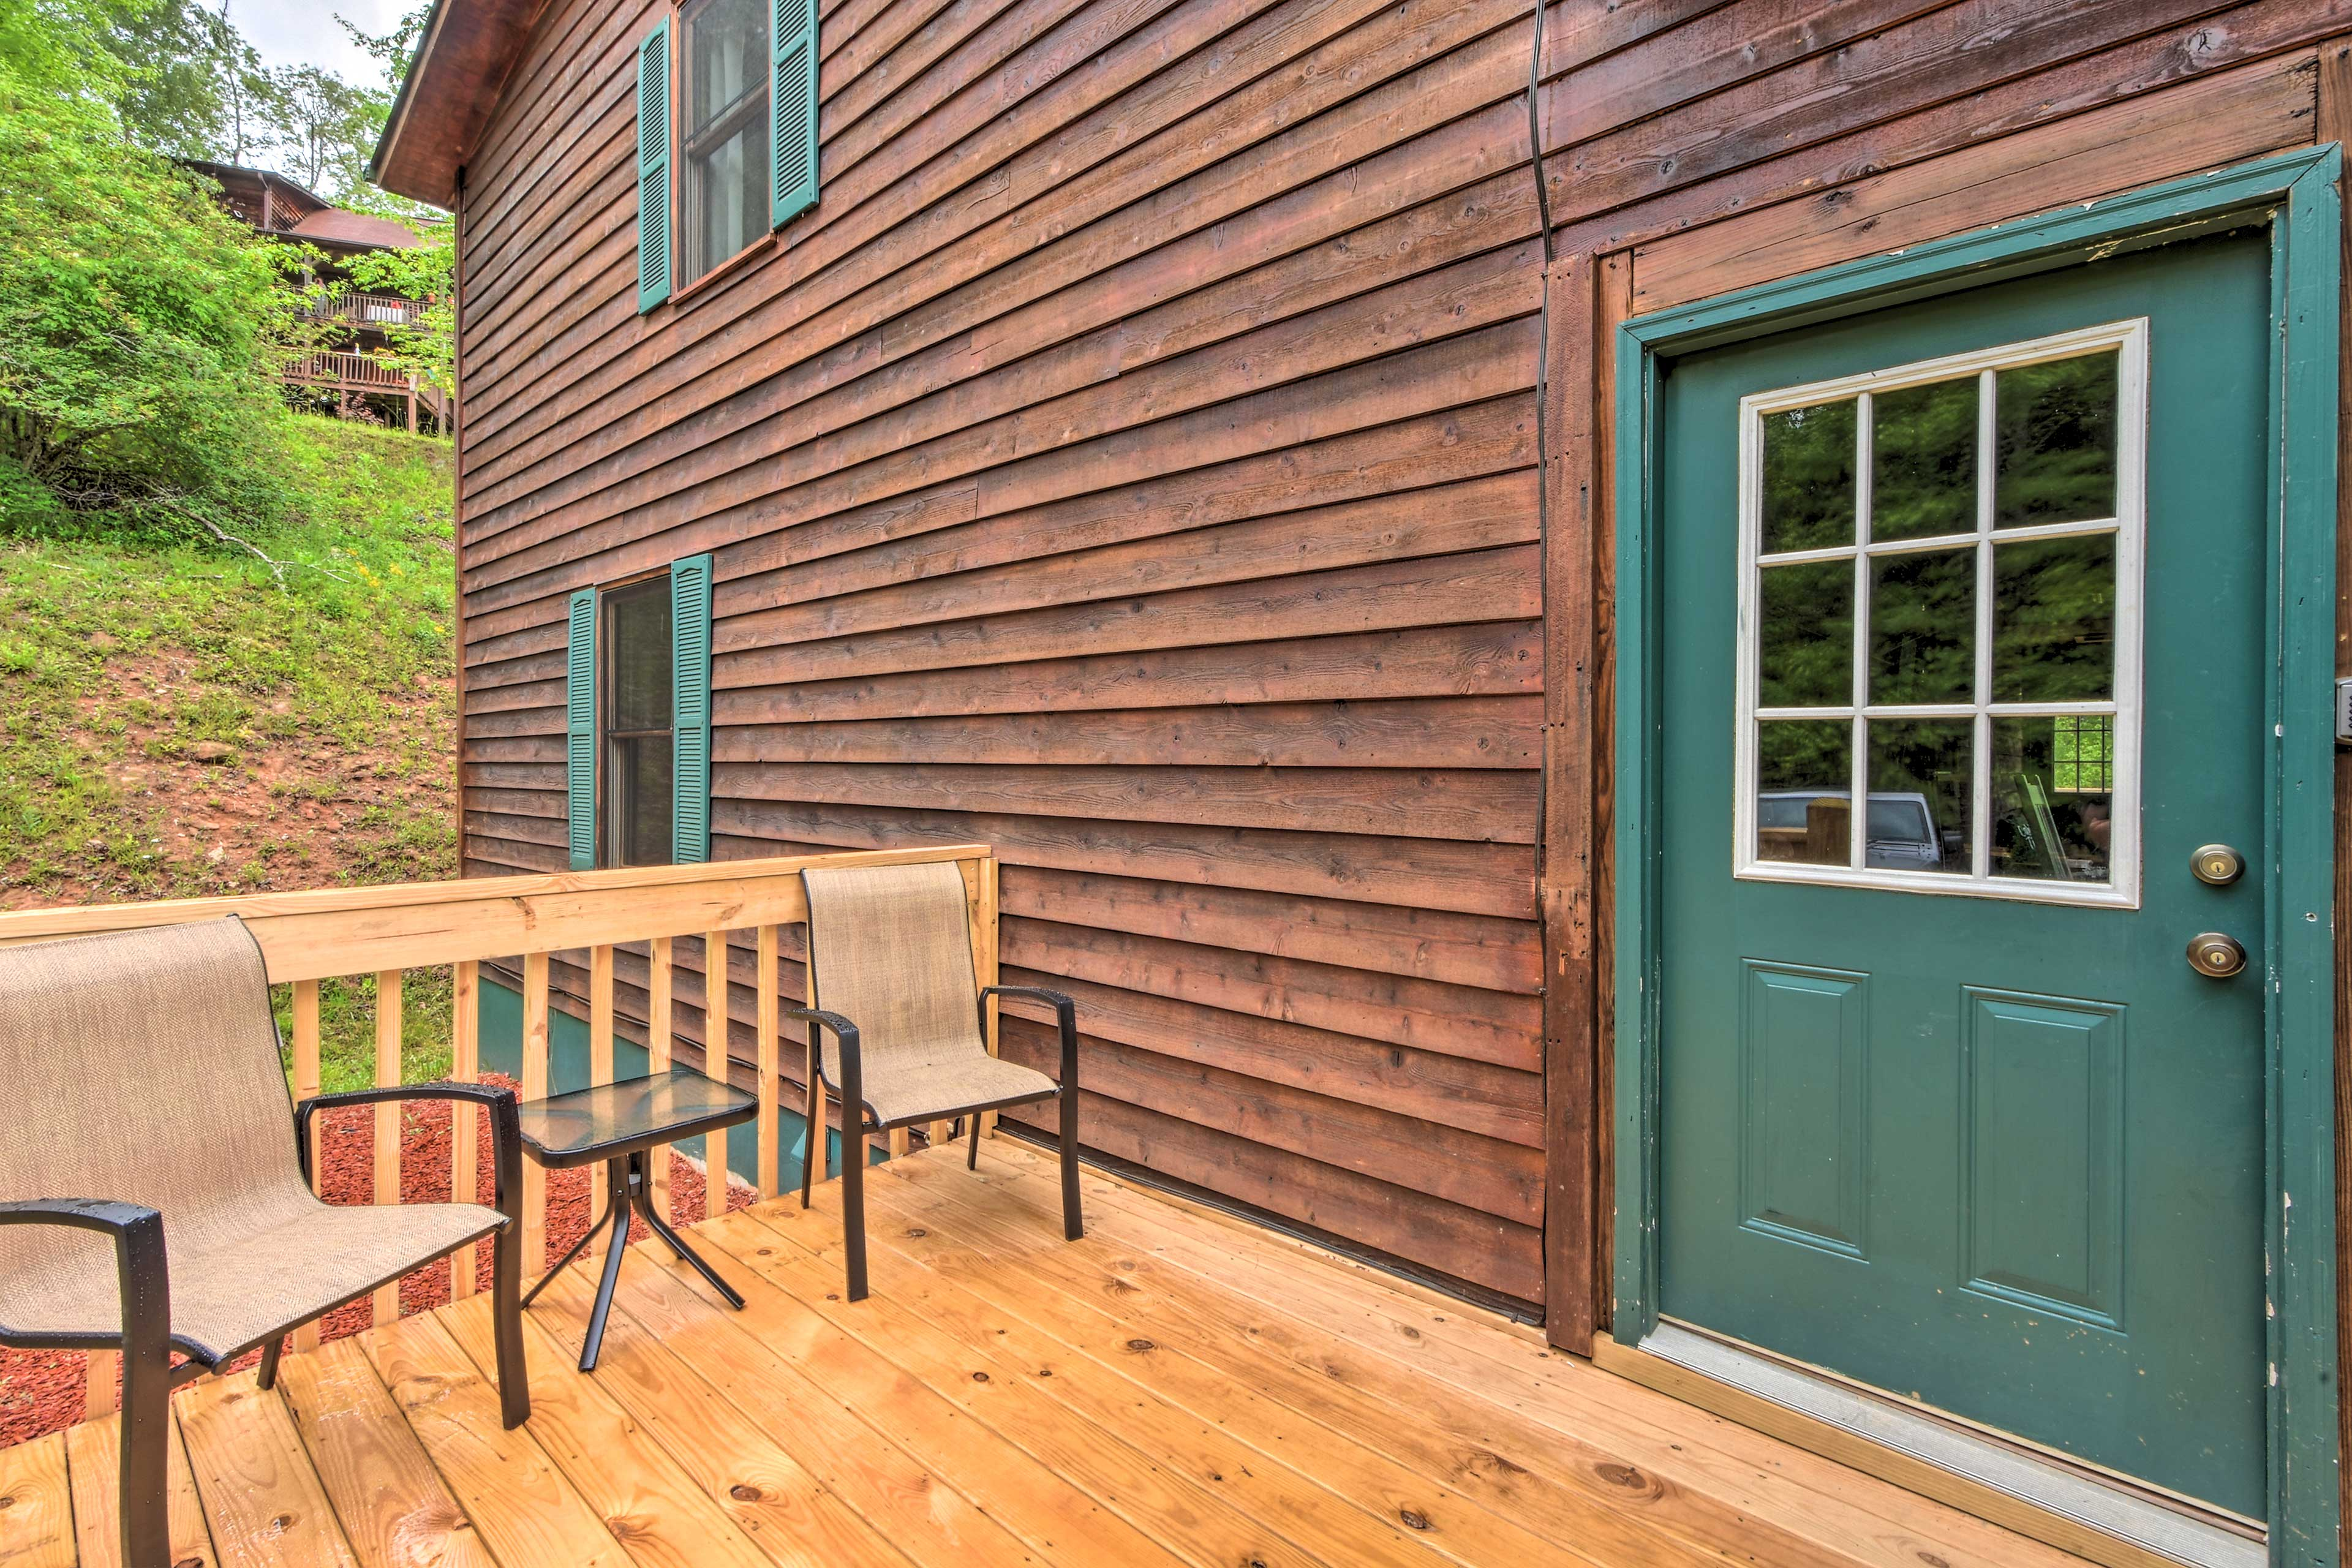 Enjoy the peacefulness and privacy that this vacation rental has to offer.